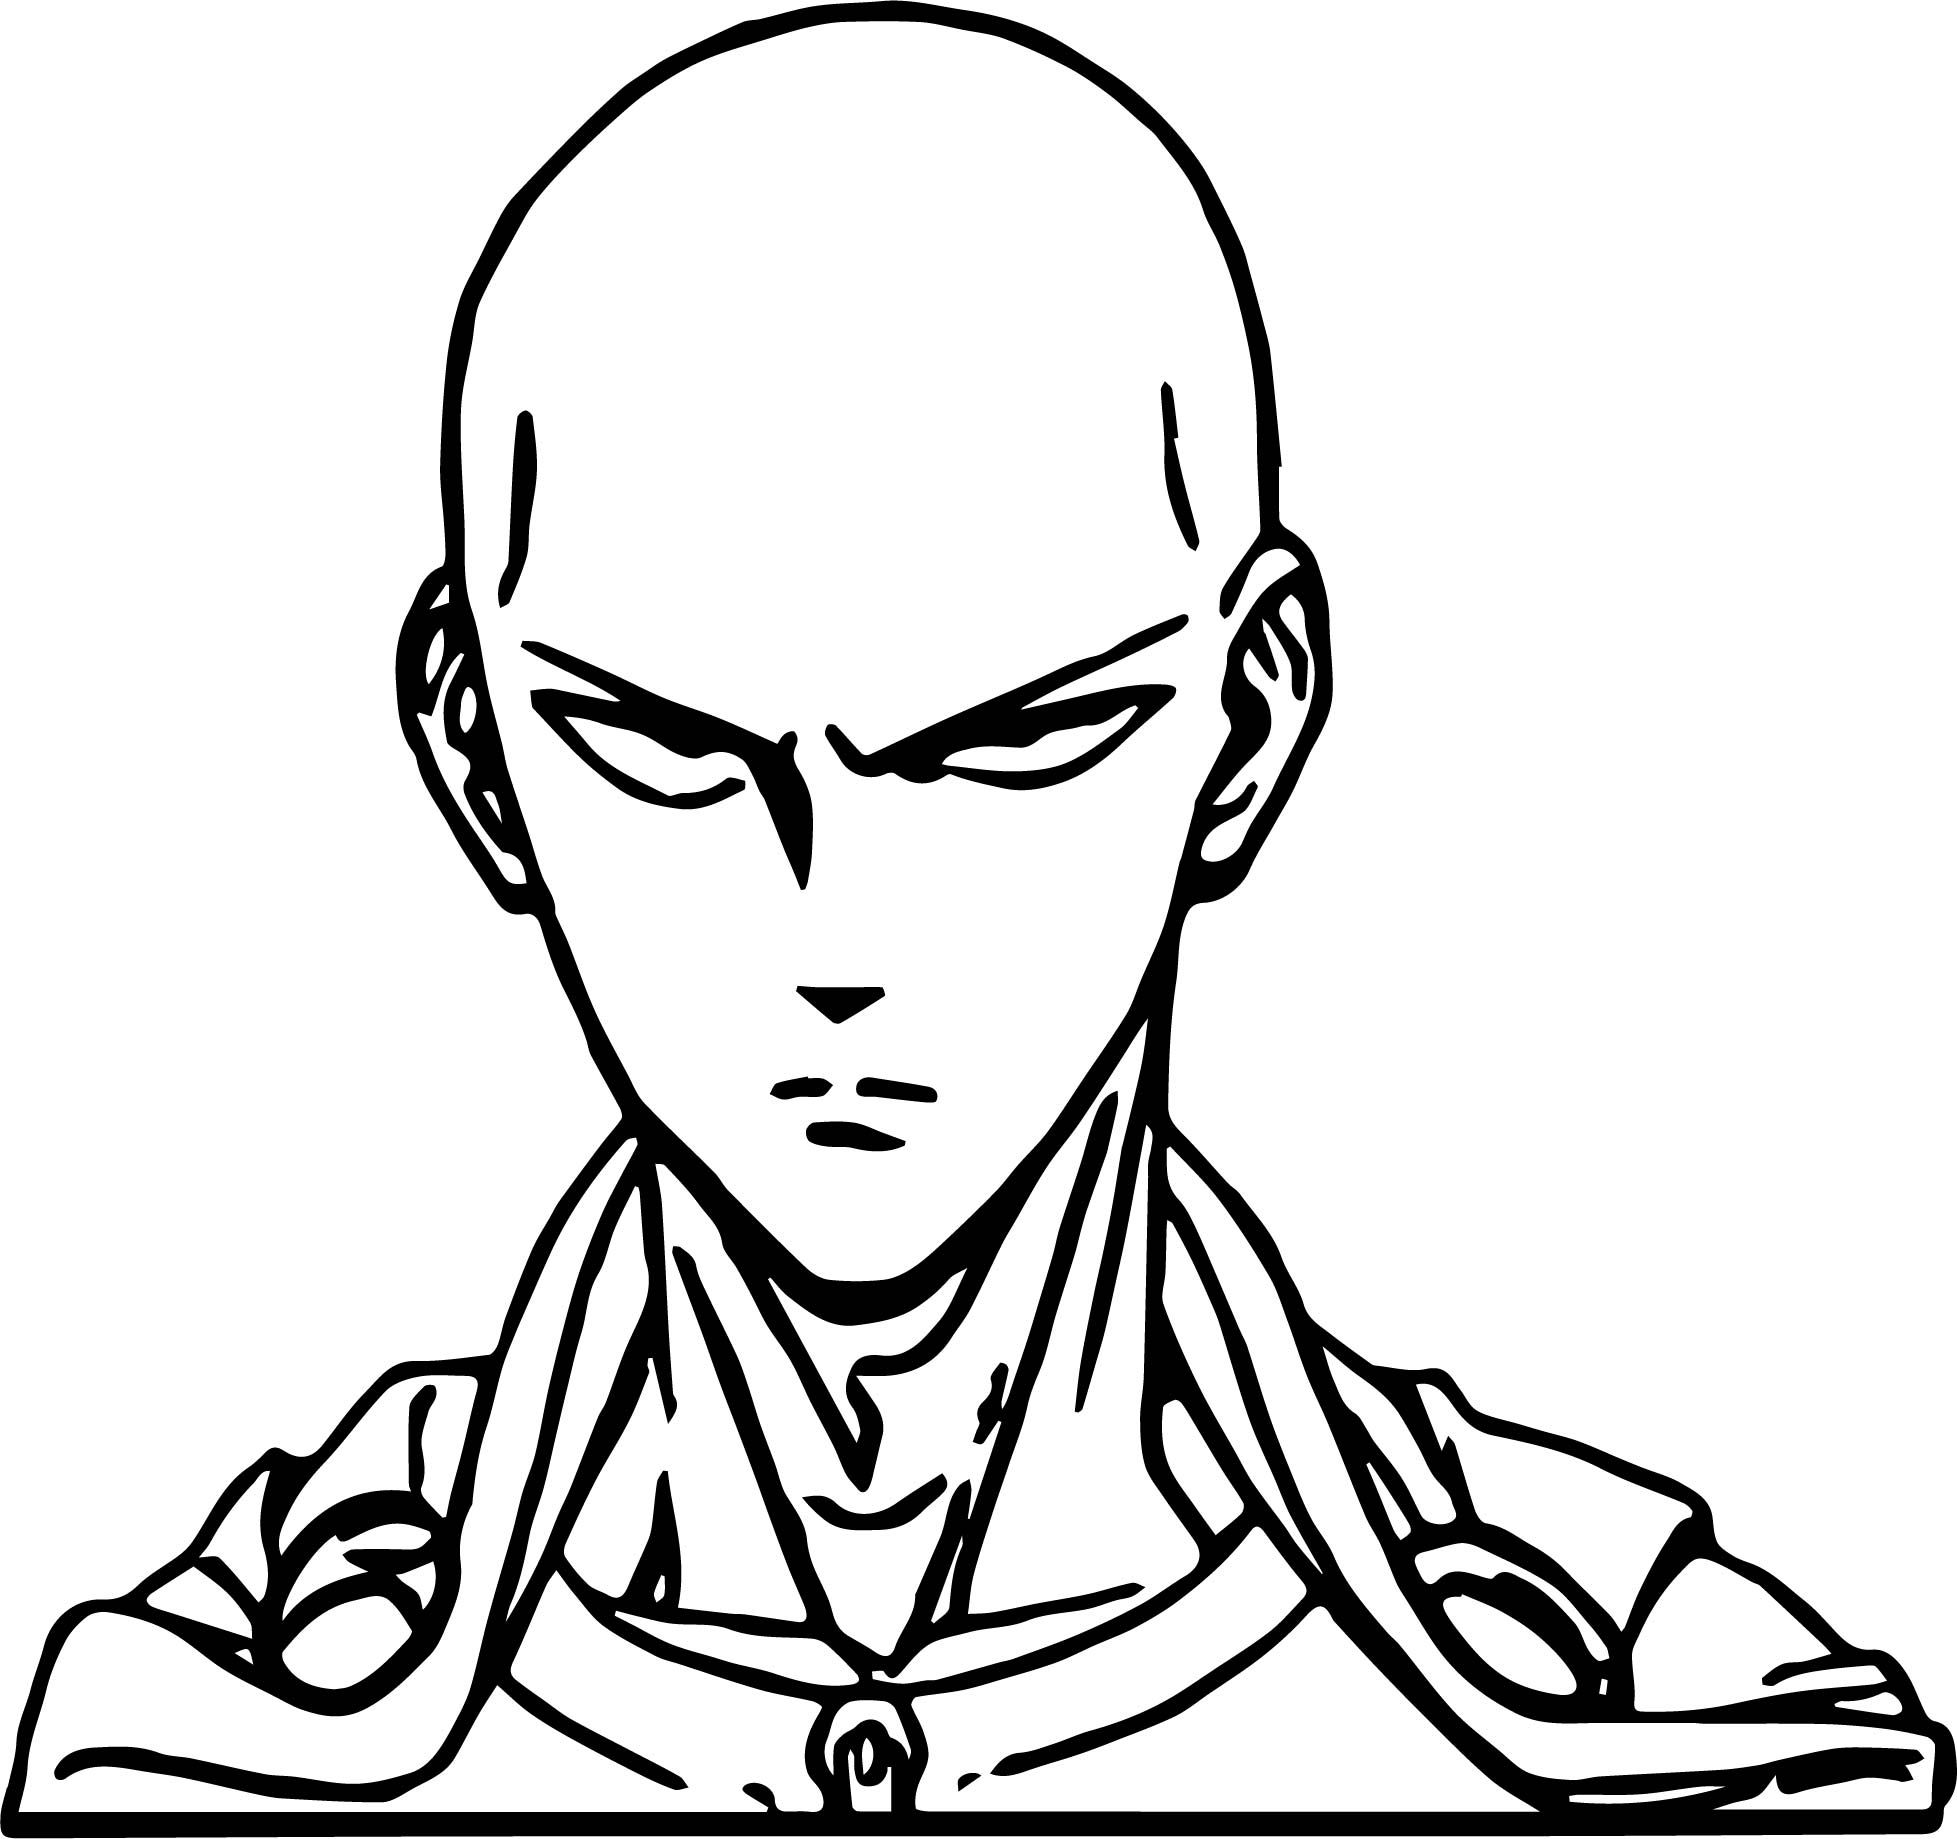 one punch man coloring pages cool One Punch Man Anime Character Design Saitama Coloring Page  one punch man coloring pages